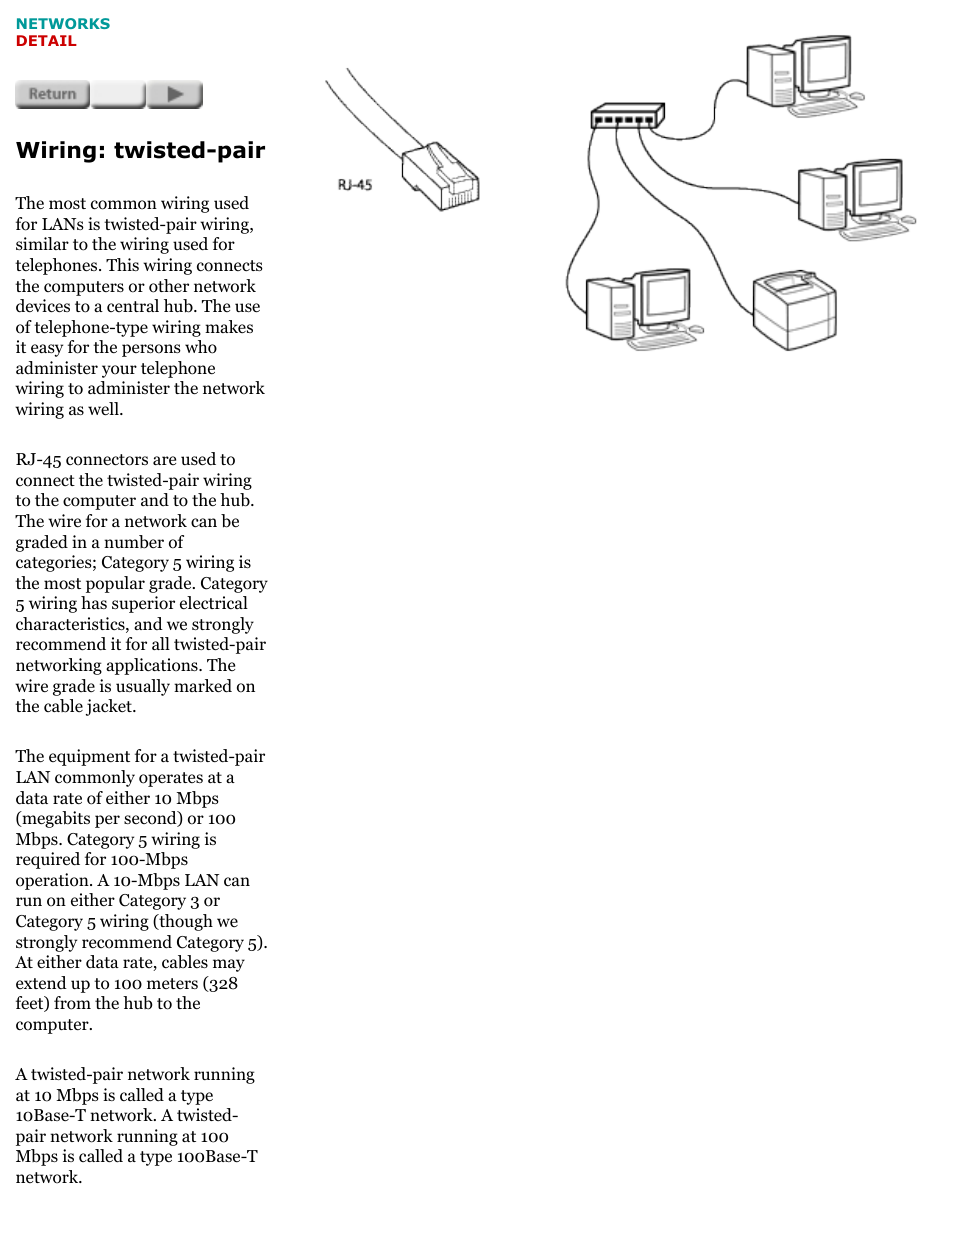 Network basics, Wiring: twisted-pair | HP Jetdirect 175x Print ...